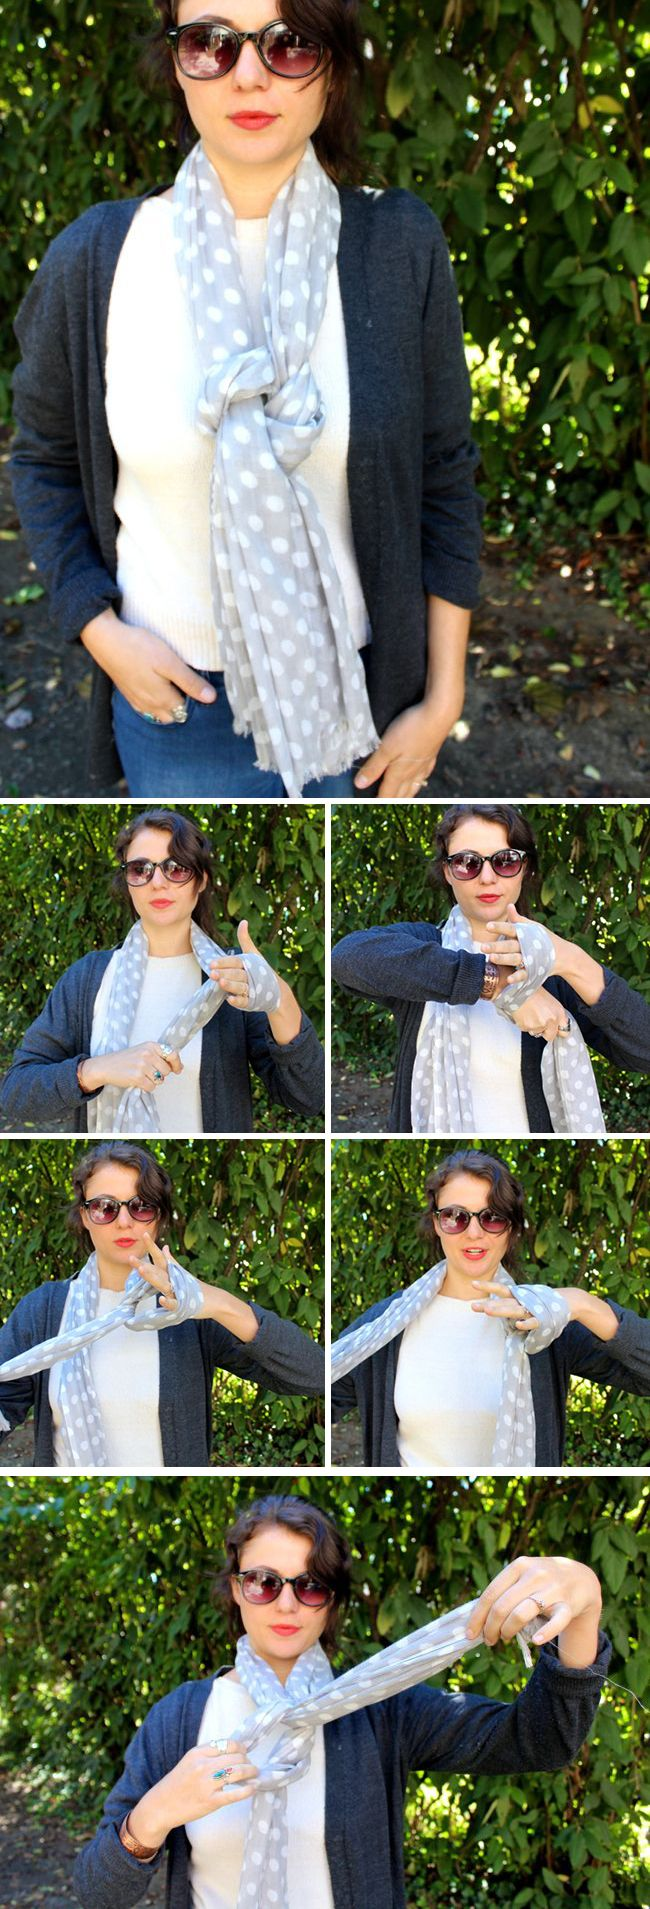 13 Super Stylish Ways to Tie a Scarf | http://hellonatural.co/how-to-tie-a-scarf/